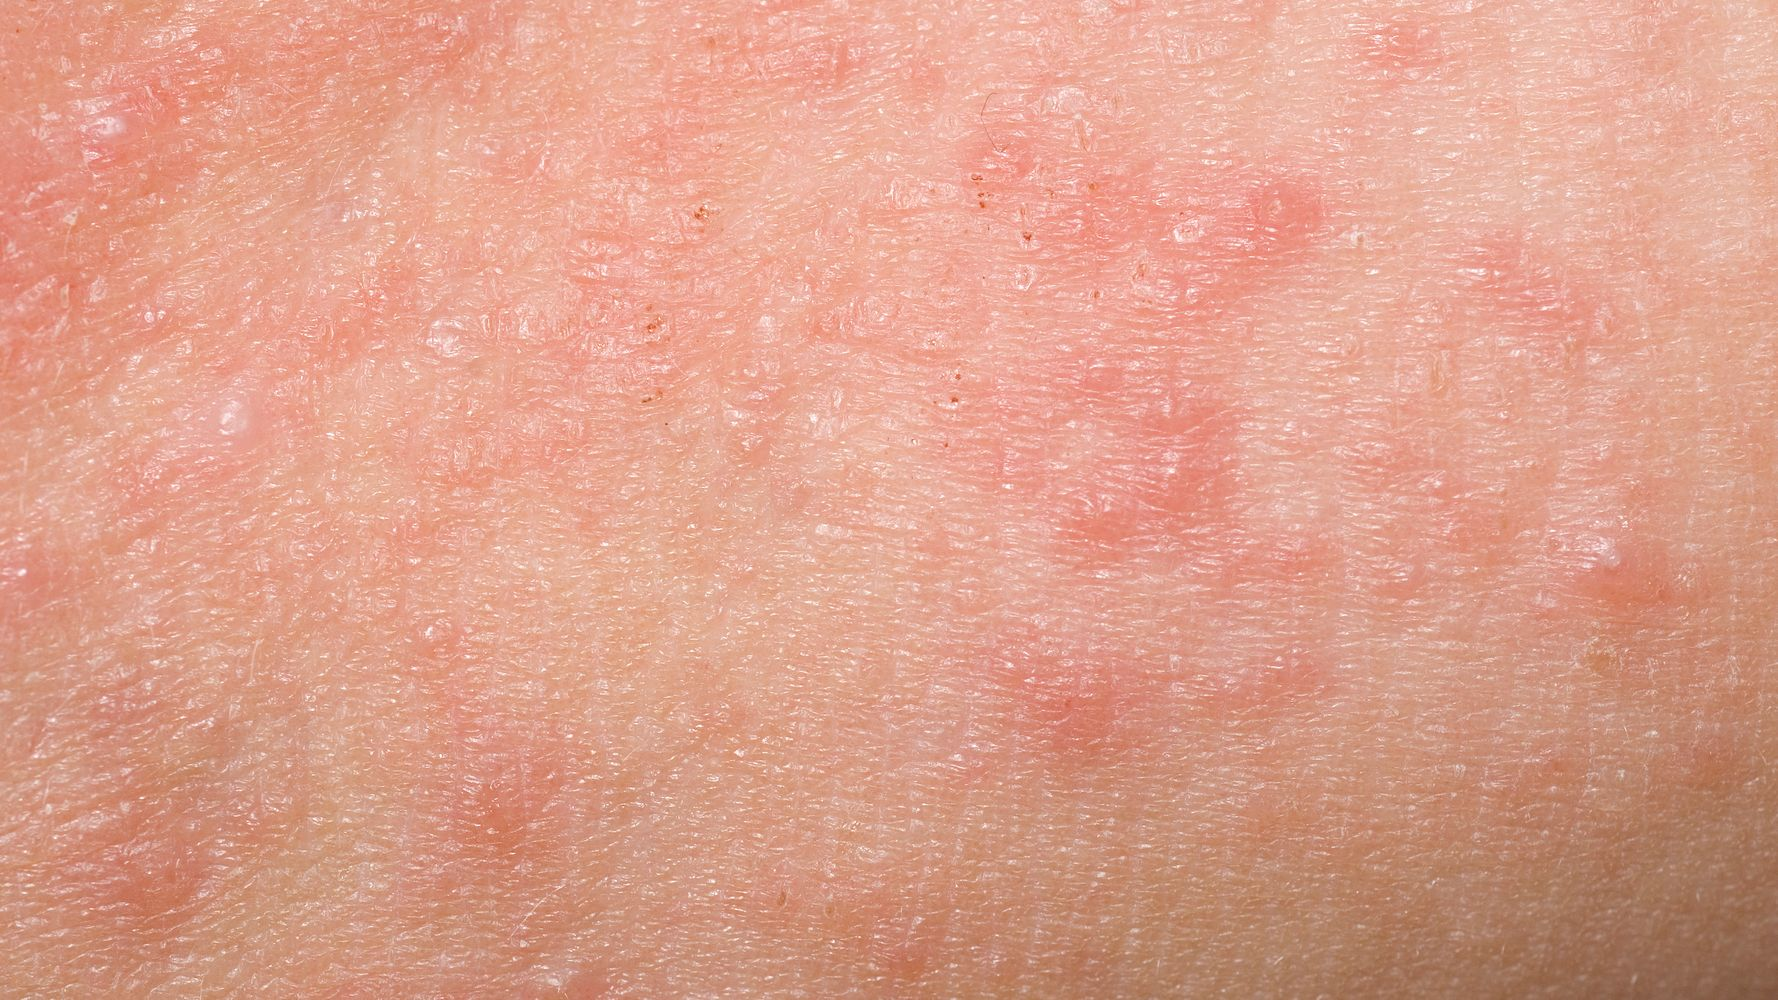 What Is Keratosis Pilaris, And Why Does It Look Like Body